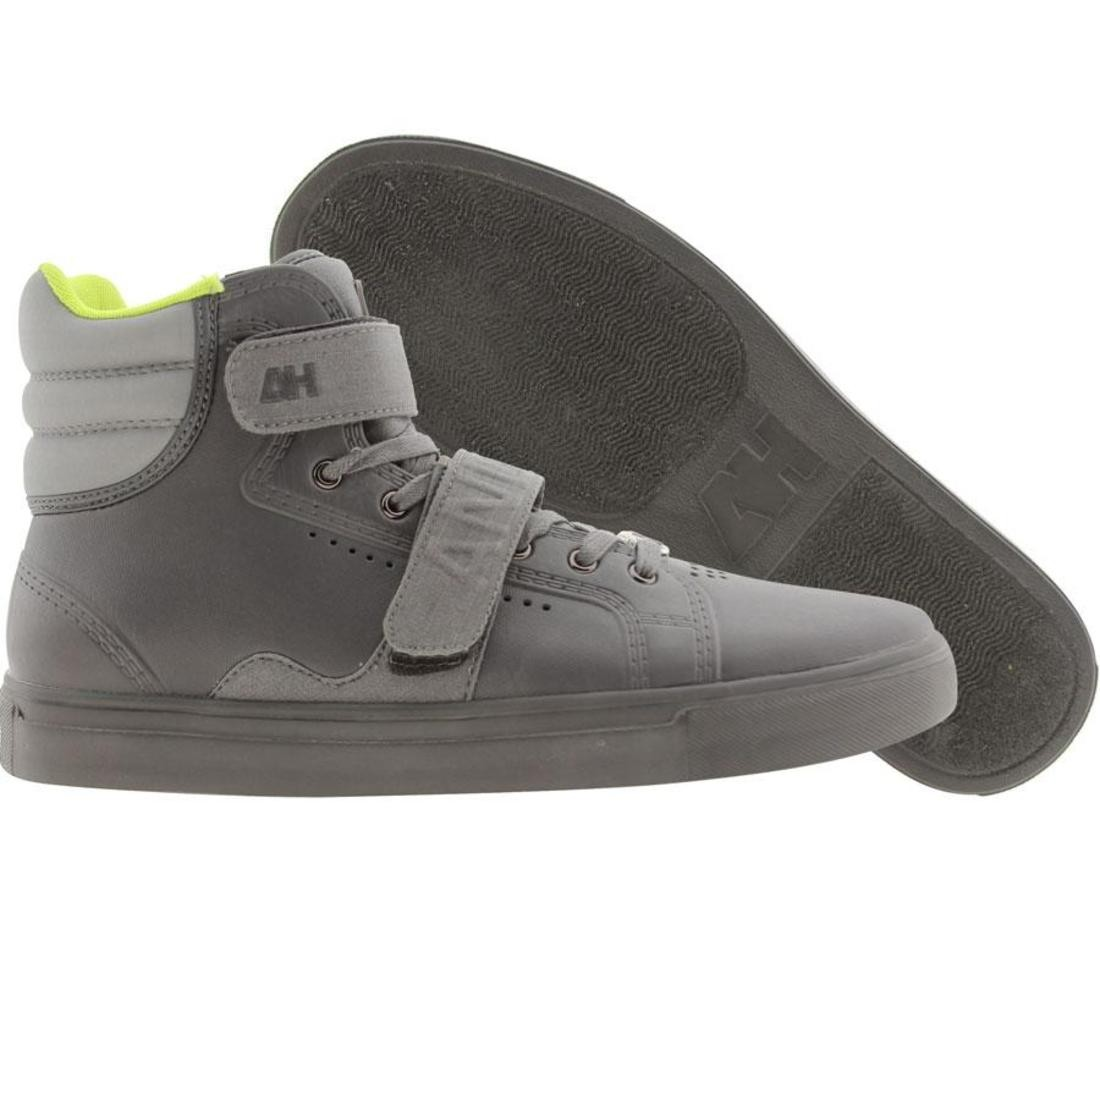 【海外限定】ハイ スニーカー メンズ靴 【 AH BY ANDROID HOMME PROPULSION HIGH EVA GREY 】